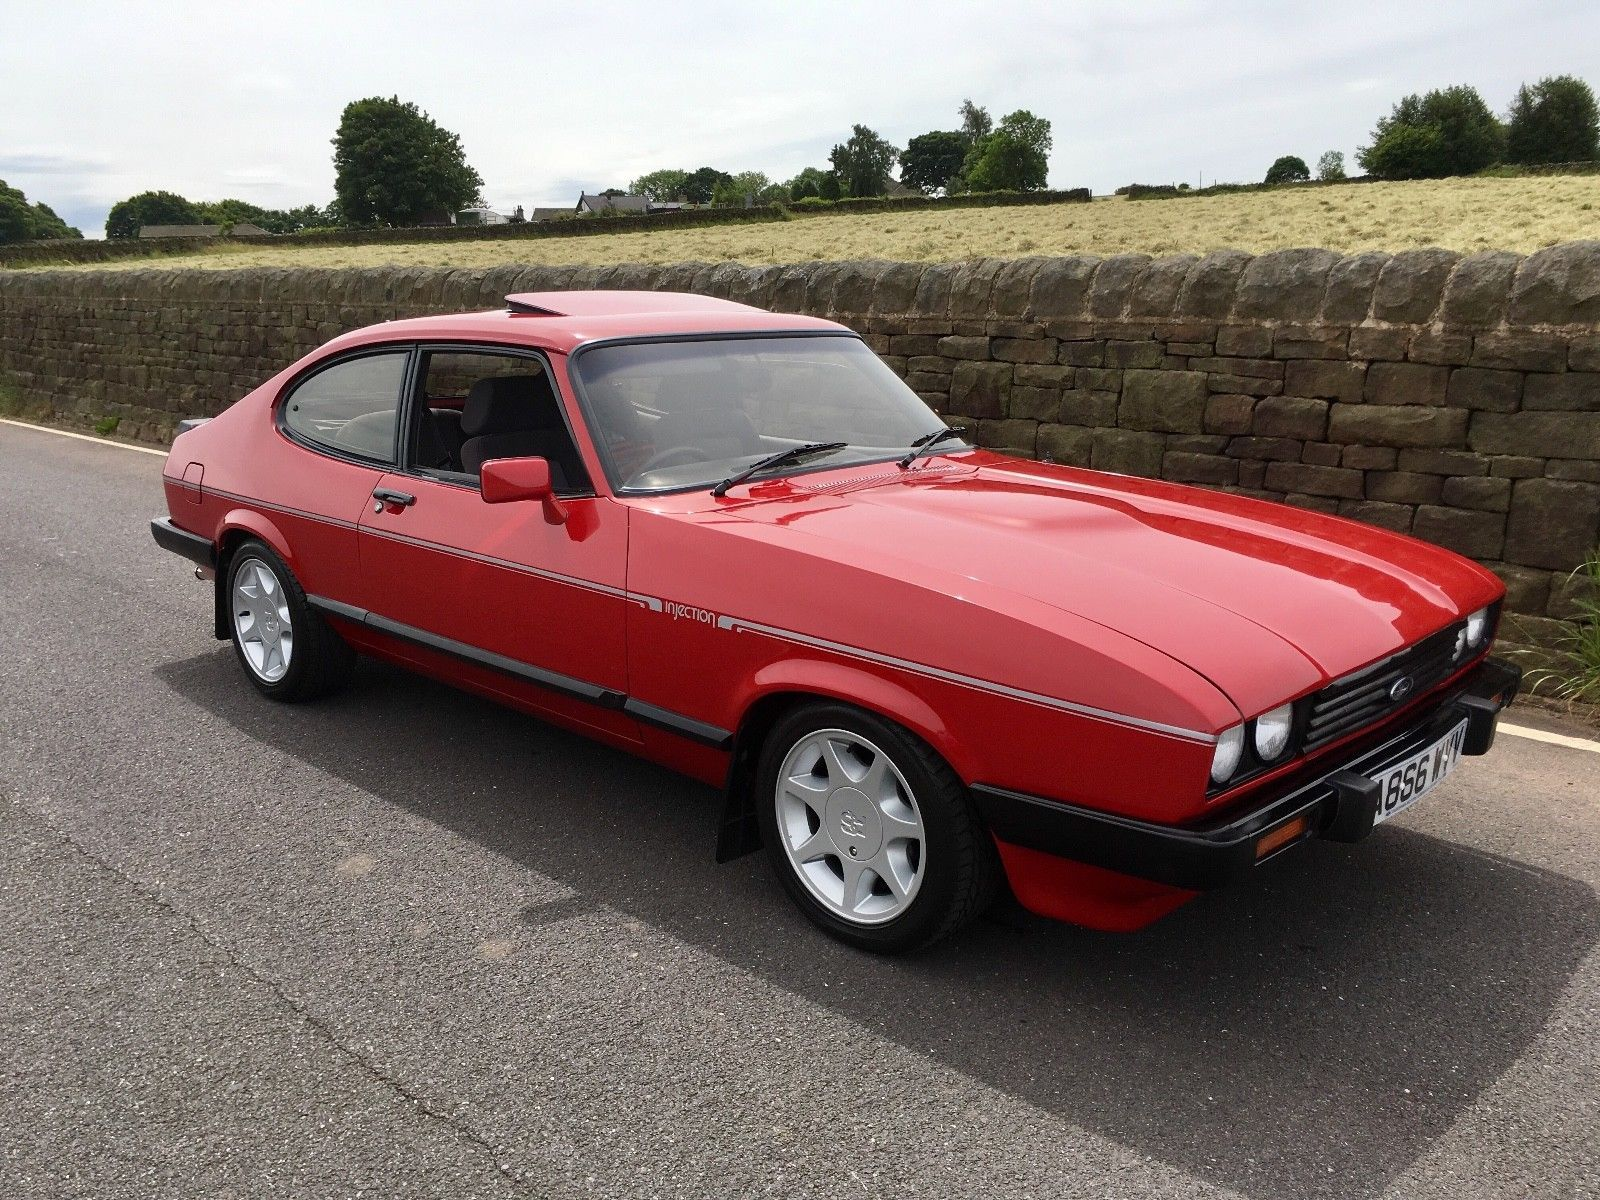 ebay ford capri 2 8 injection 1984 cardinal red 1980s cars cars ford capri ford classic. Black Bedroom Furniture Sets. Home Design Ideas